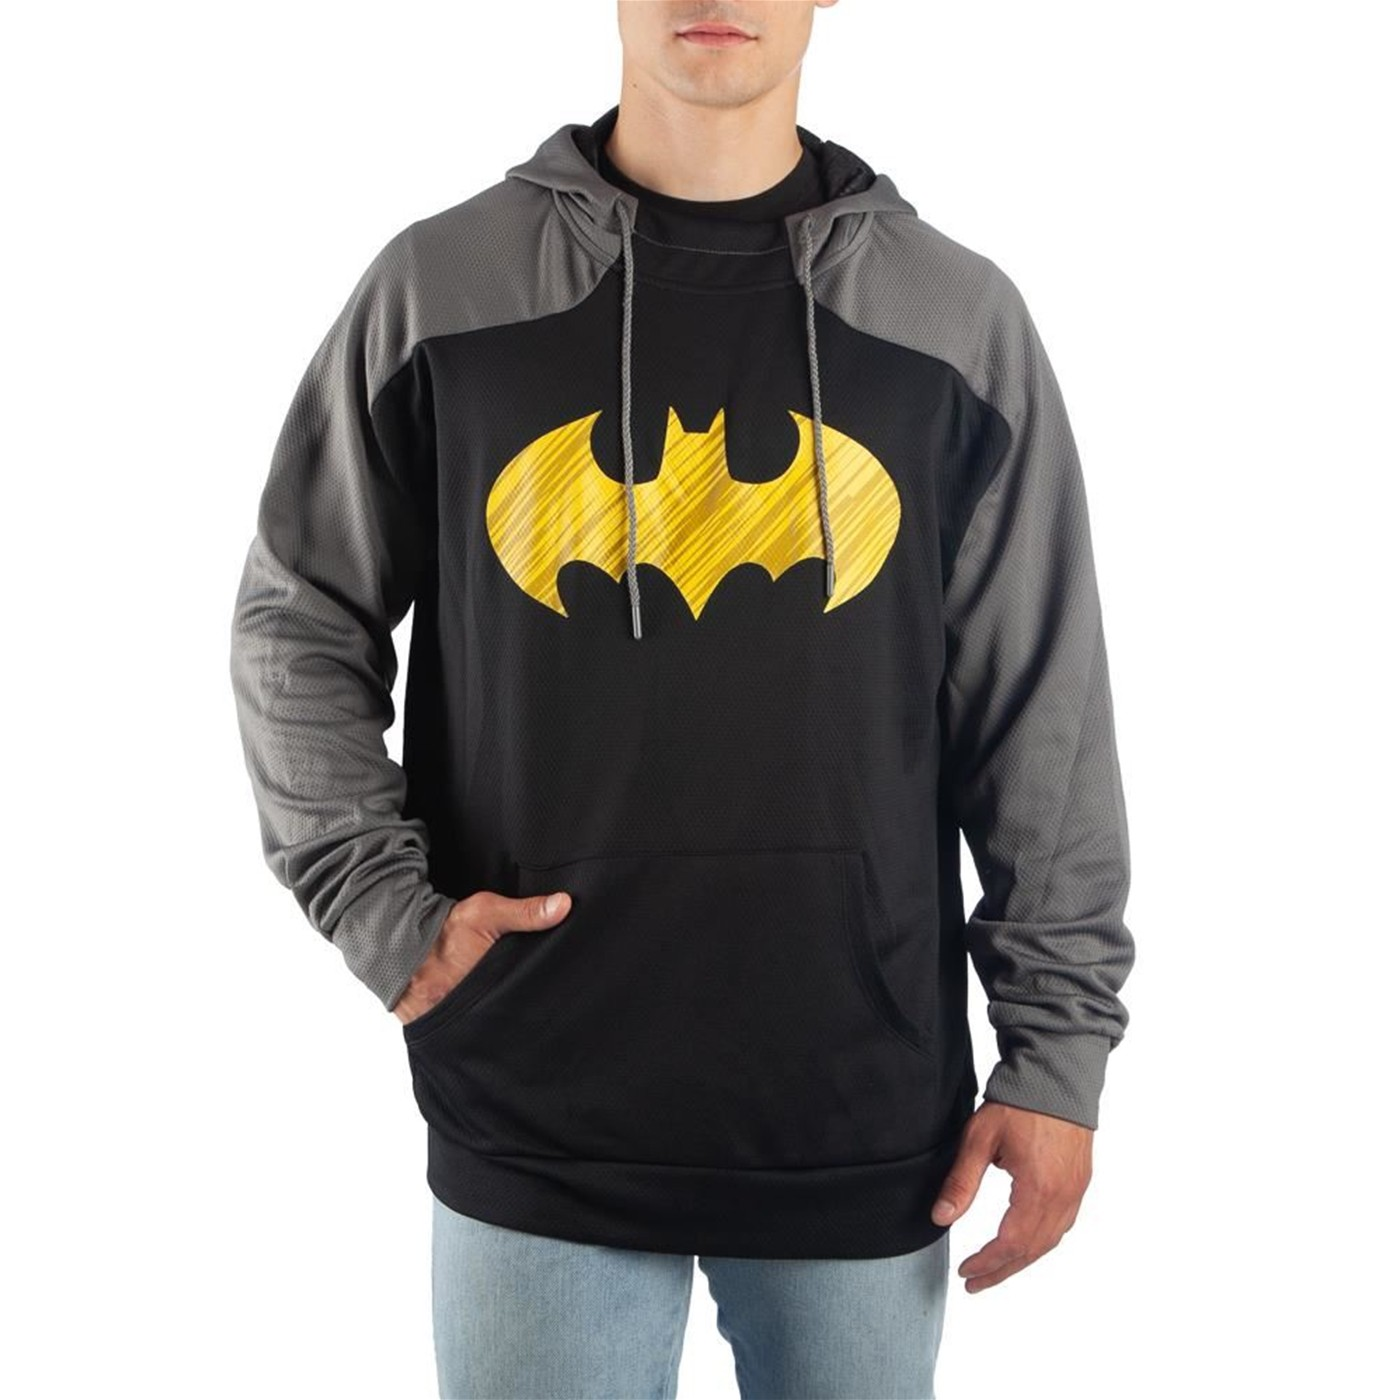 Batman Yellow Symbol Black and Grey Athletic Men's Hooded Sweatshirt